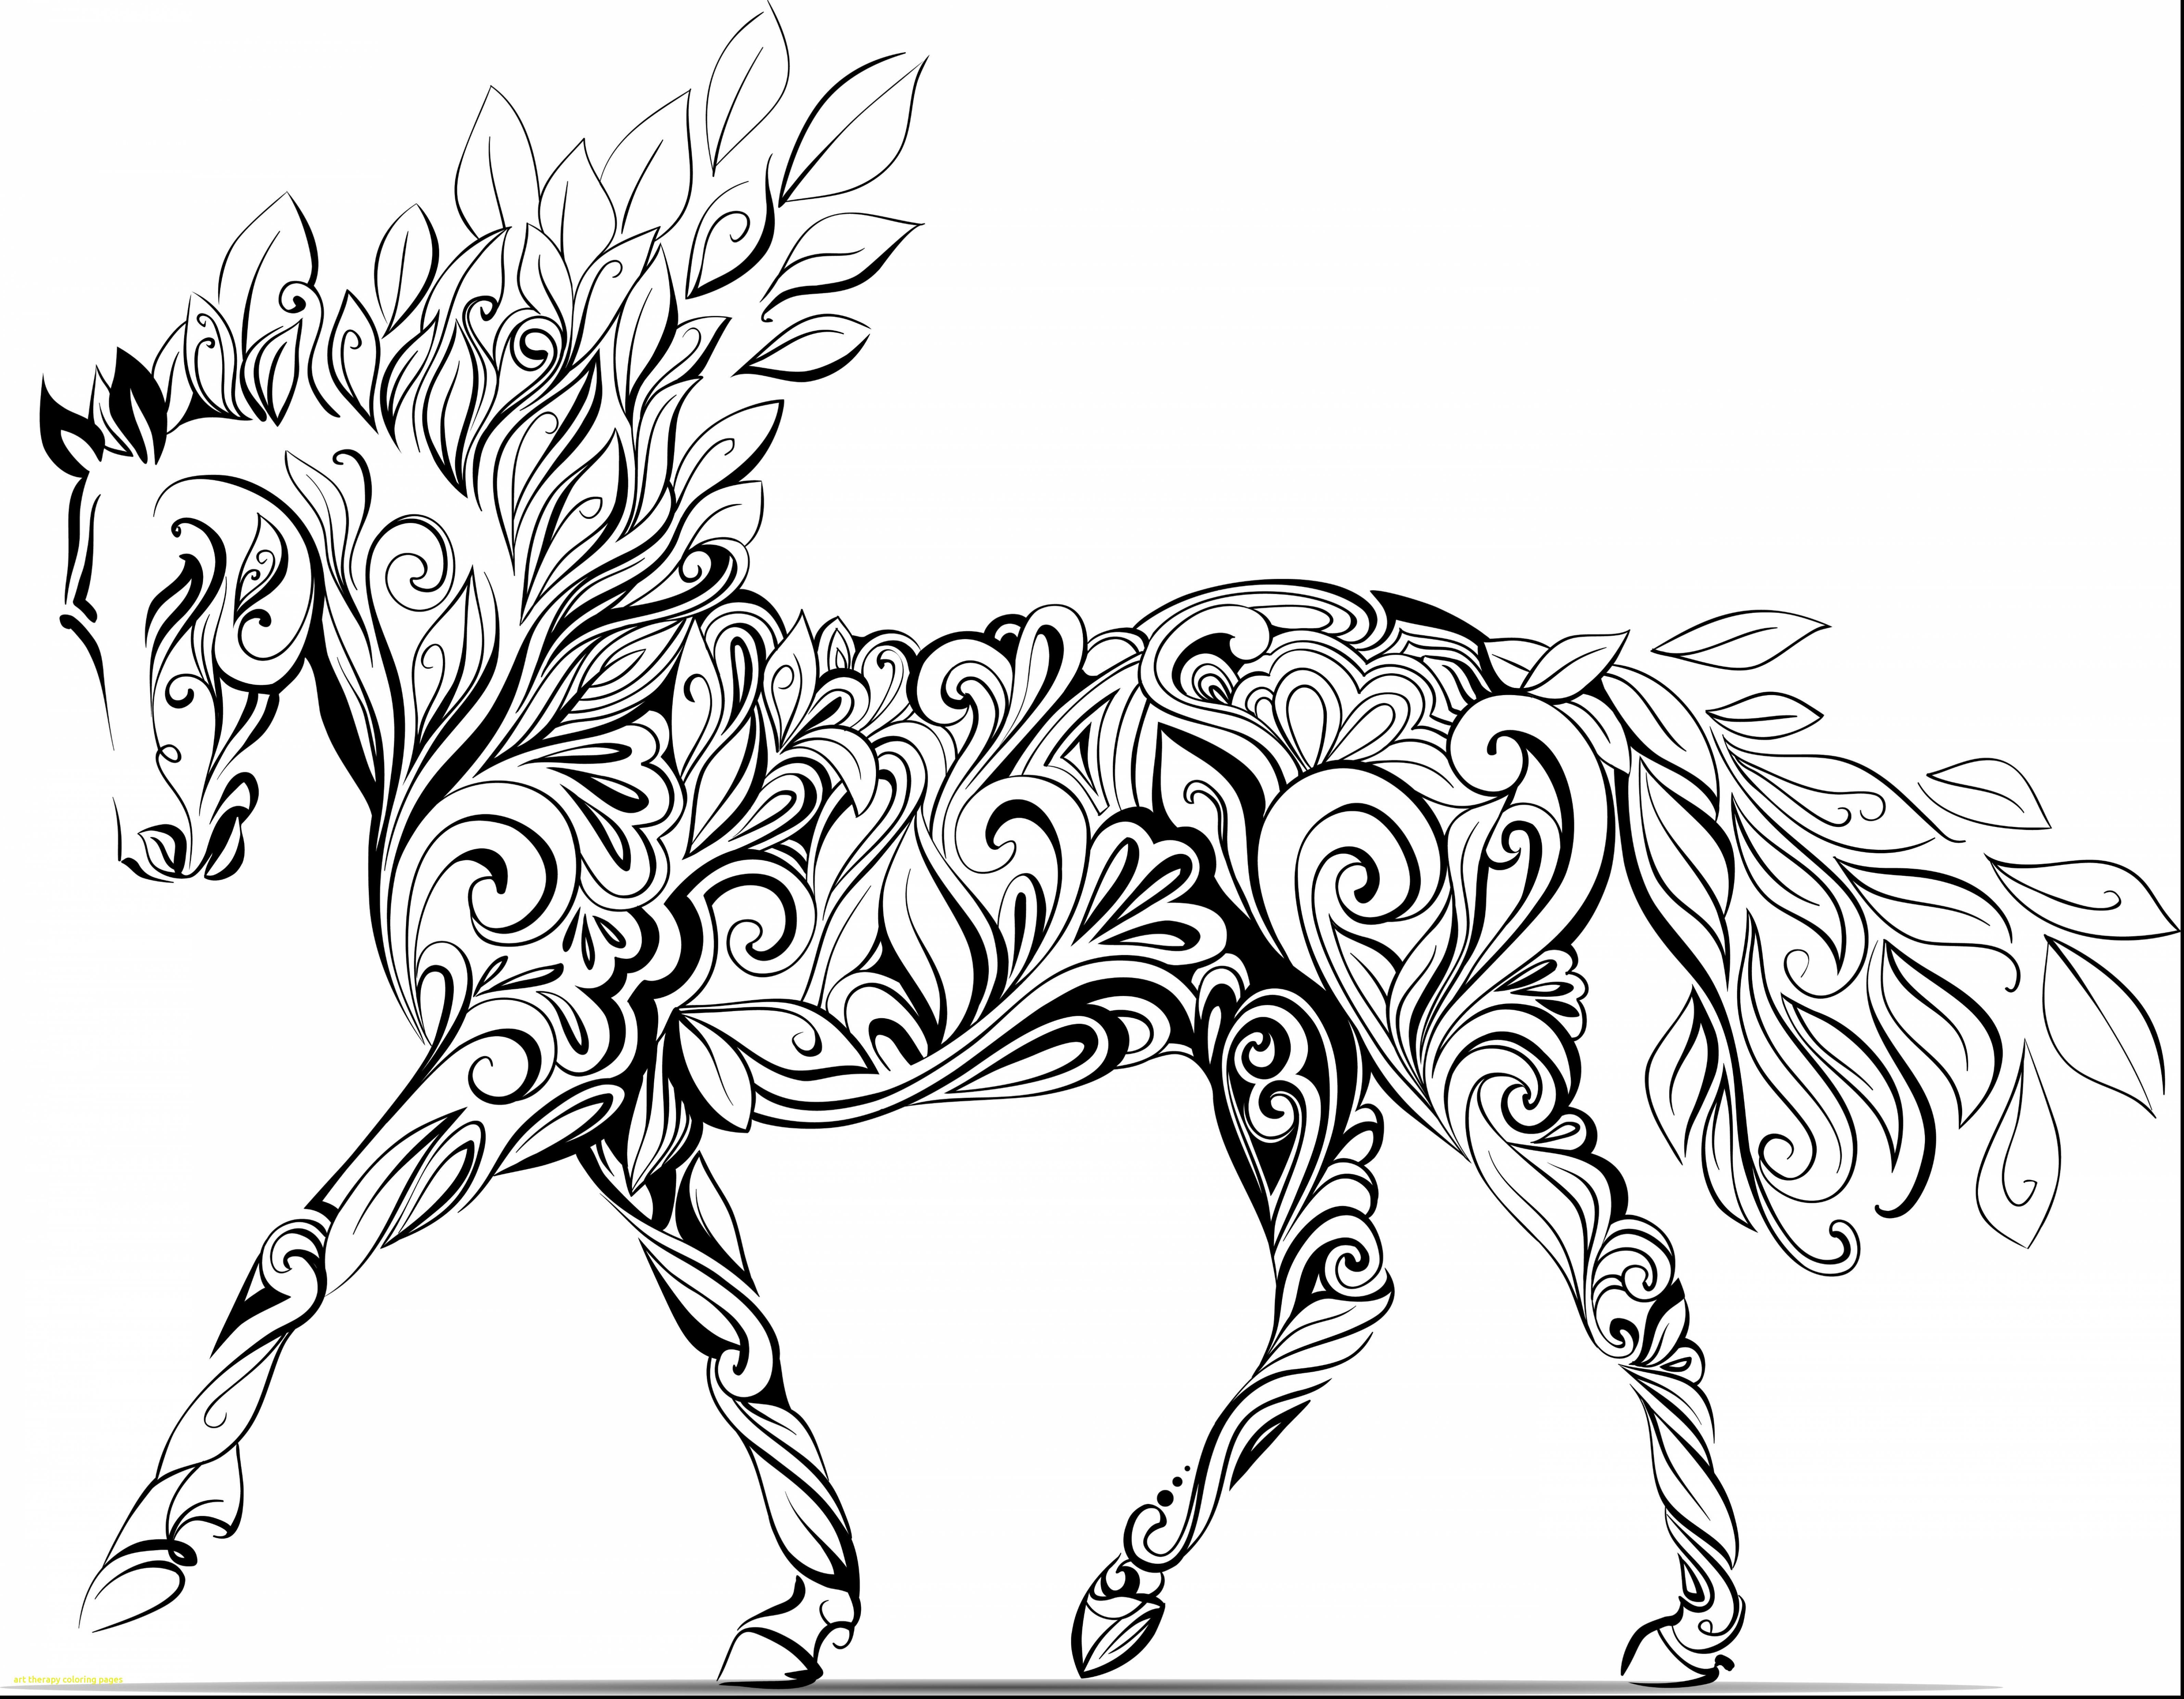 - 20 Beautiful Calico Critters Coloring Pages Horse Adult Coloring